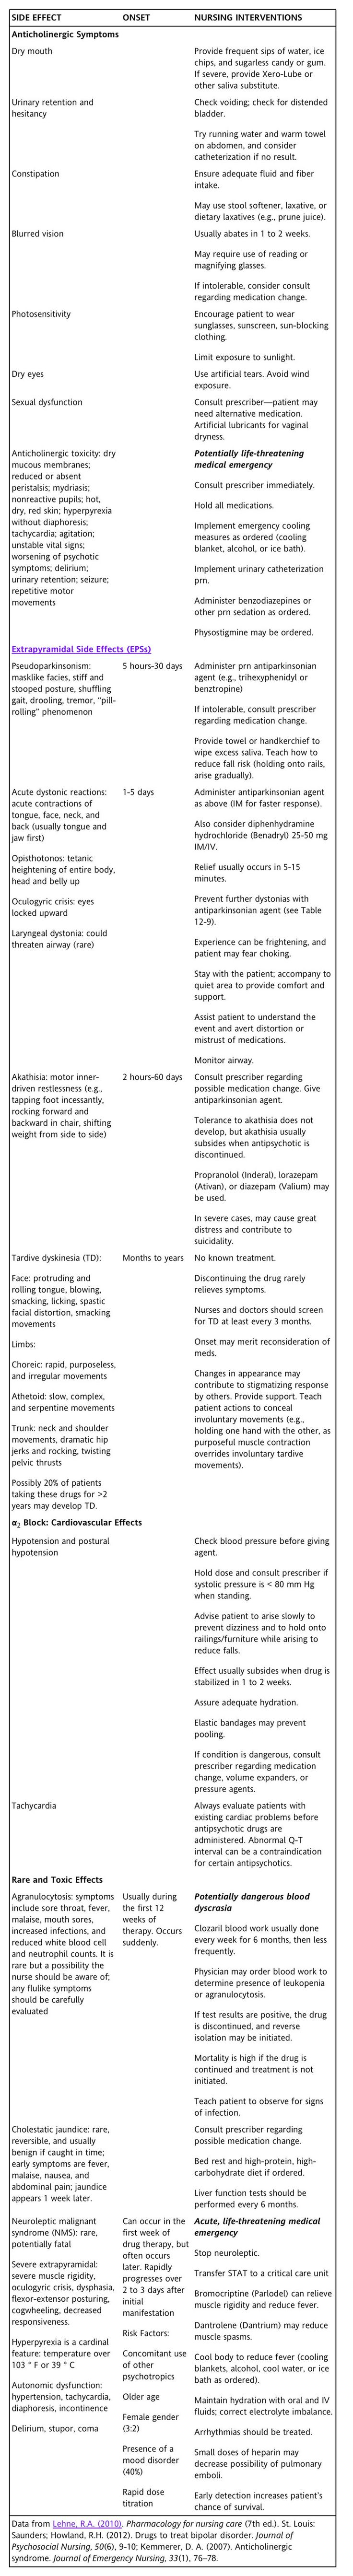 SIDE EFFECTS OF CONVENTIONAL ANTIPSYCHOTICS AND RELATED NURSING INTERVENTIONS